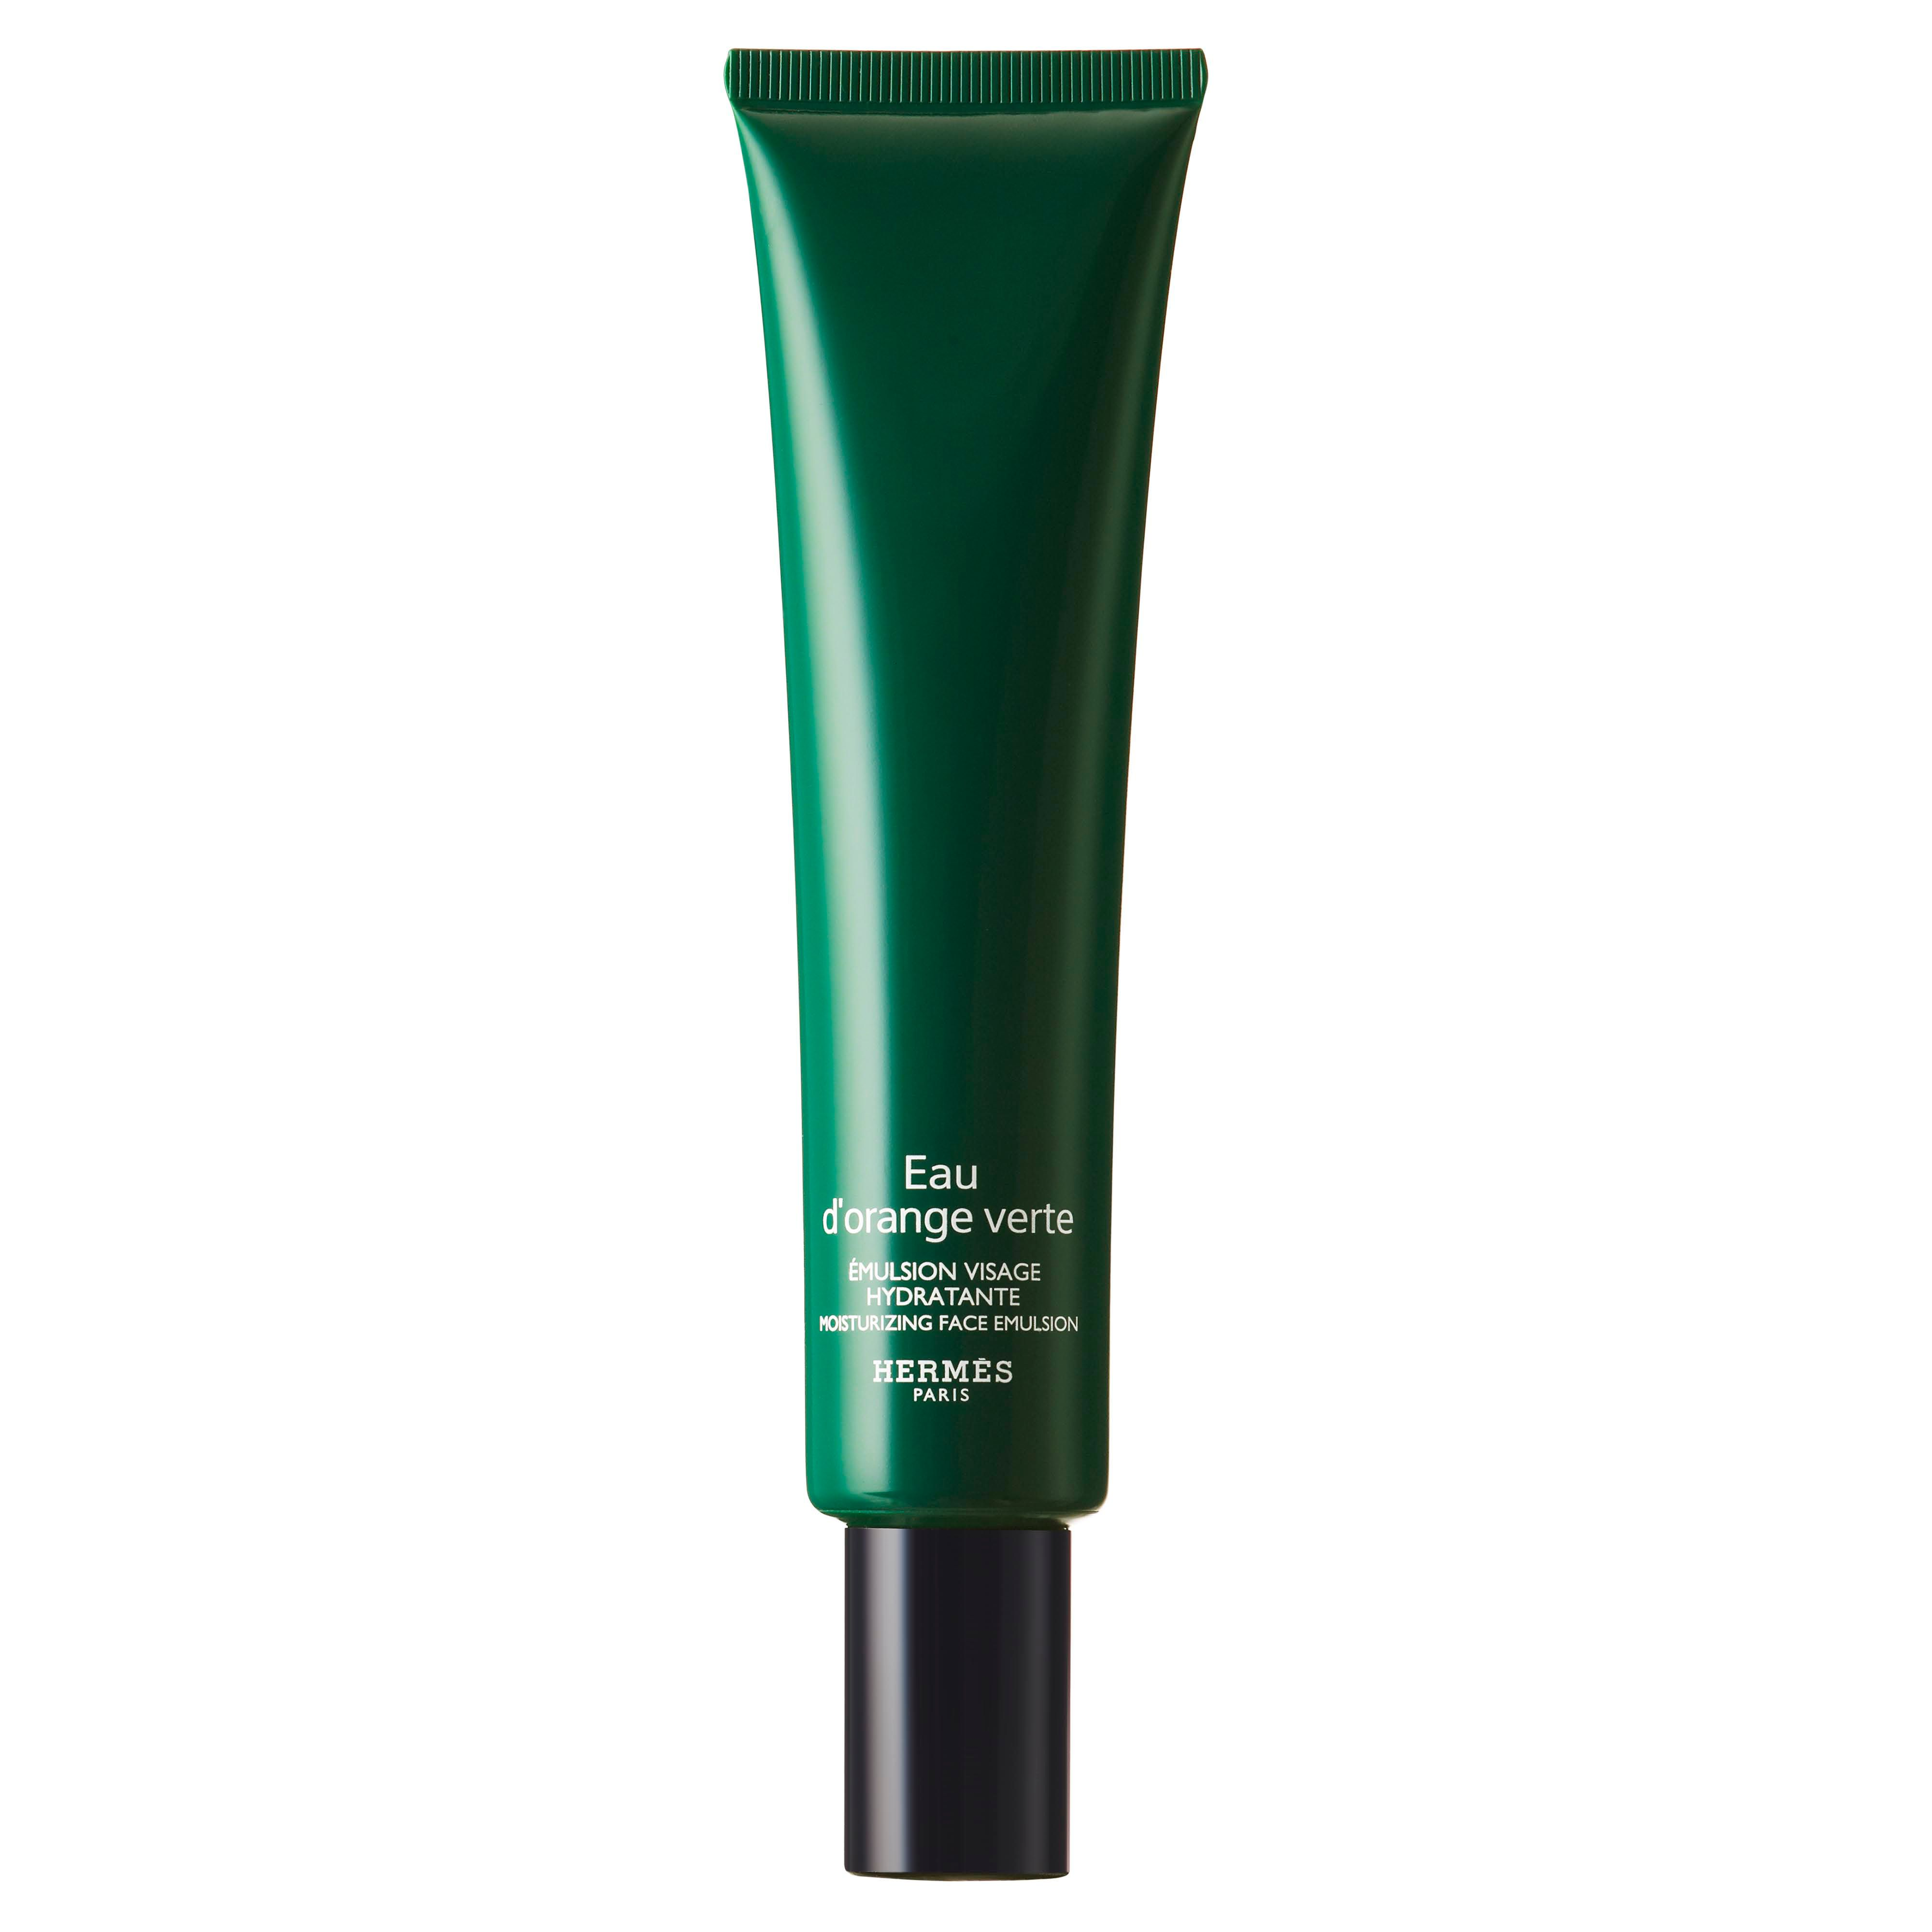 Eau d`Orange Verte Moisturizing Face Emulsion